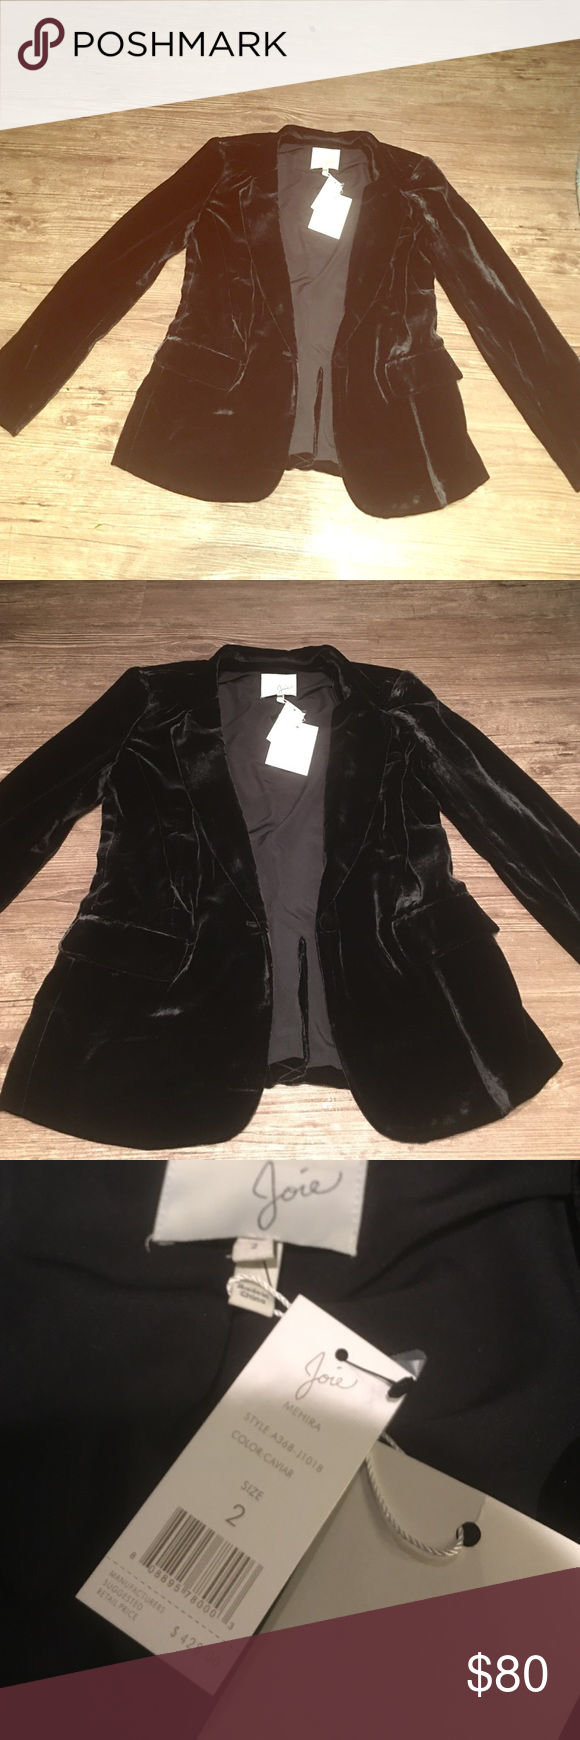 Joie Black Blazer-high line designer!  🎀 Super soft blazer, black in color, size 2, perfect Christmas gift 🎁 I'm doing such a discounted rate! Take advantage while you can 💓 Joie Jackets & Coats Blazers